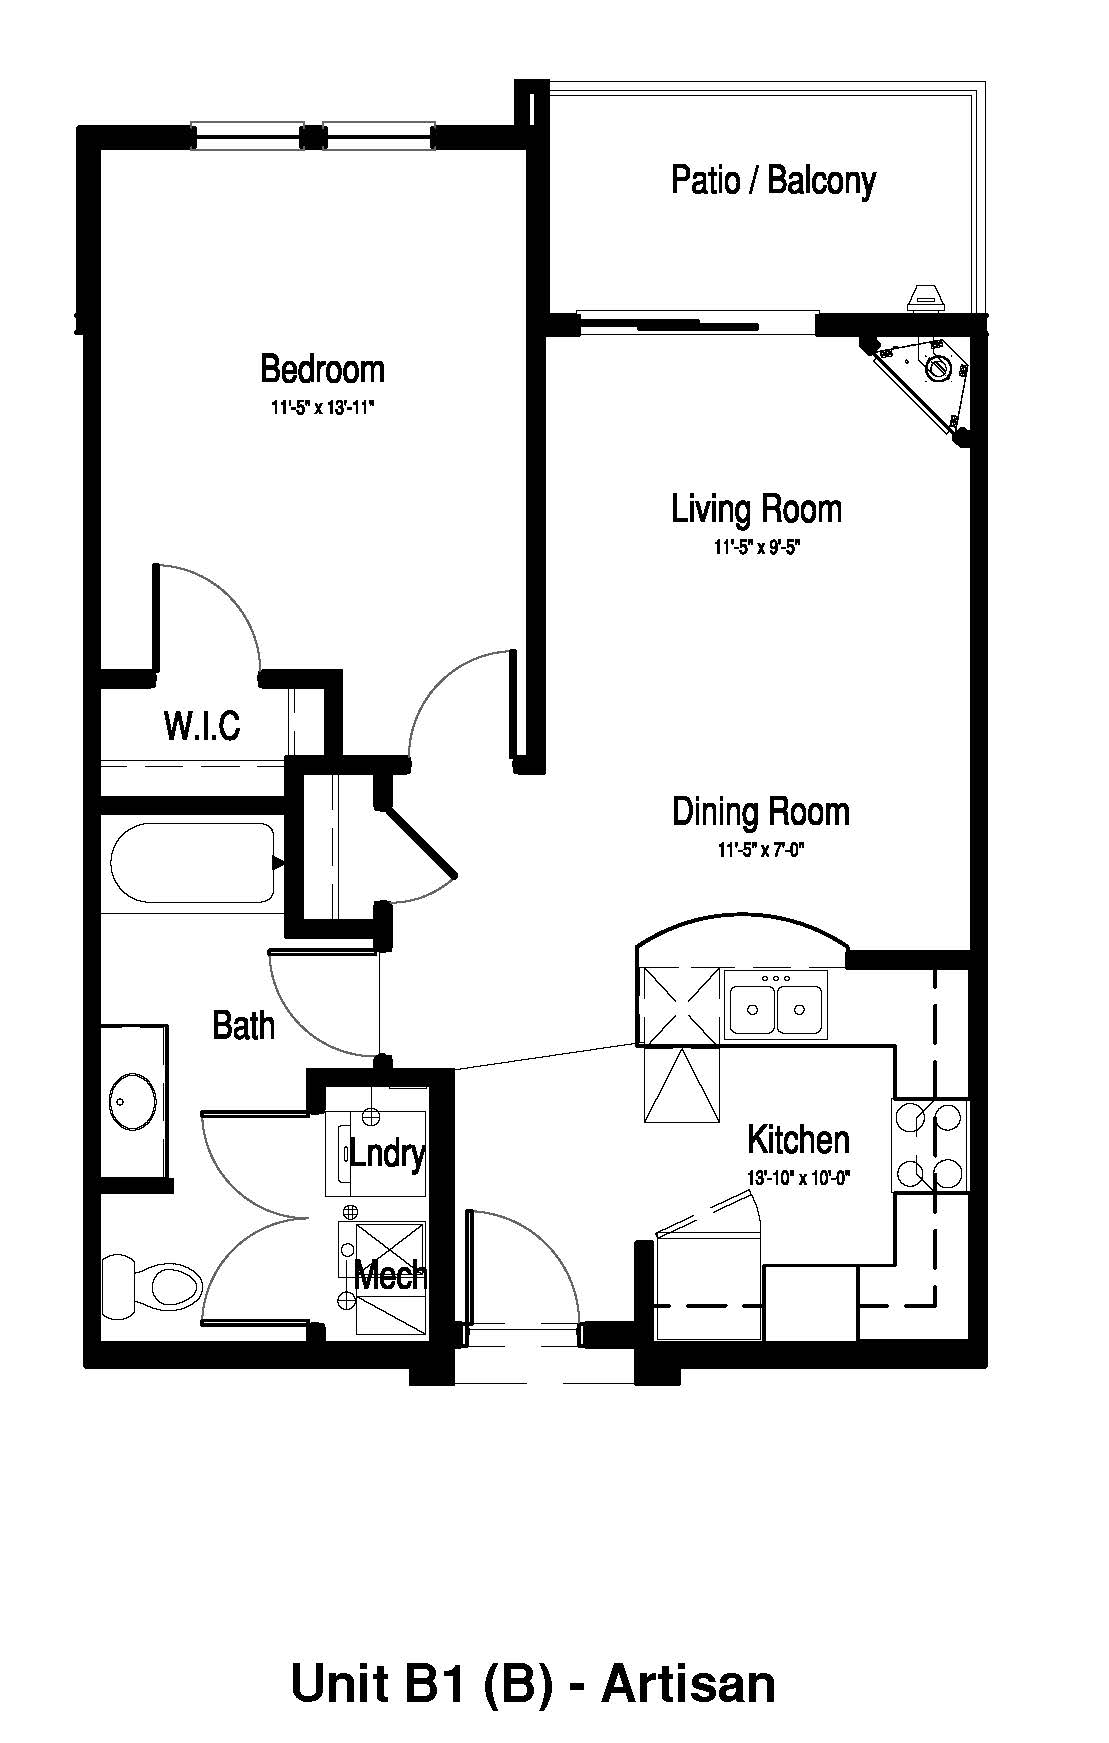 One Bedroom, One Bath - 734 Sq. Ft. - The Artisan at Georgetown Square